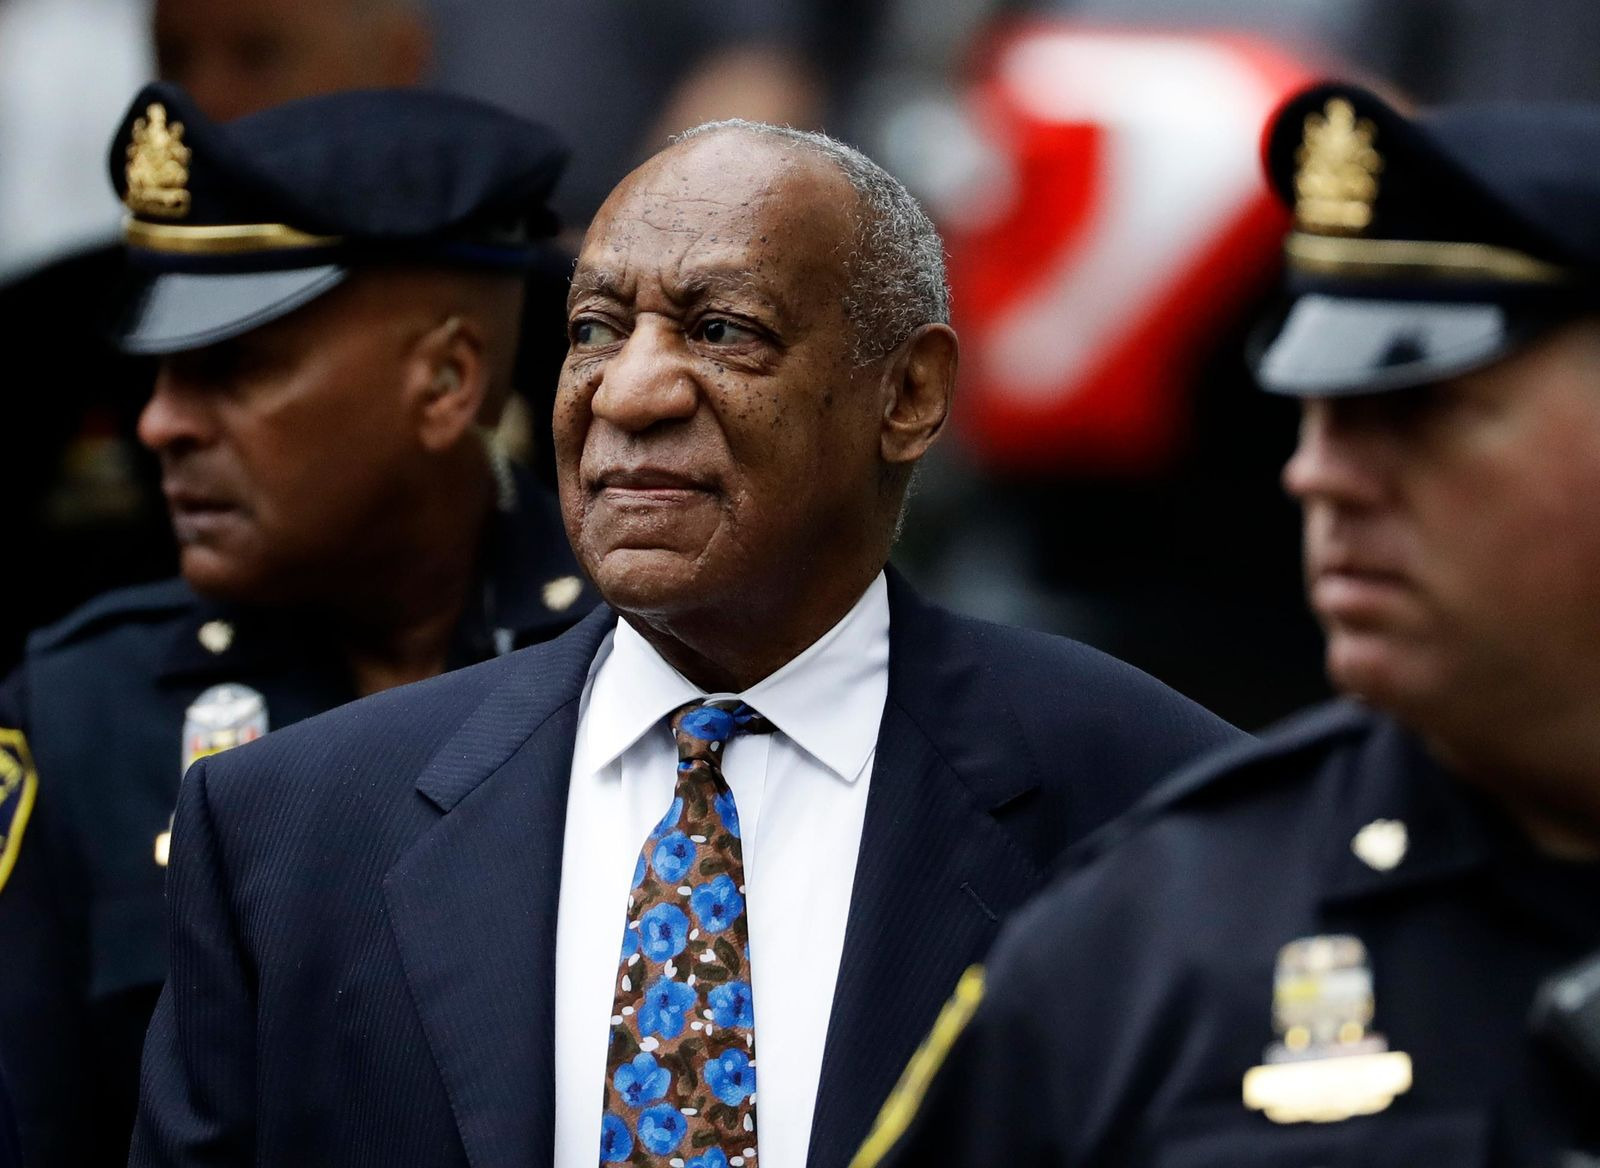 FILE - In this, Sept. 24, 2018 file photo Bill Cosby arrives for his sentencing hearing at the Montgomery County Courthouse, , in Norristown, Pa. (AP Photo/Matt Slocum, File)